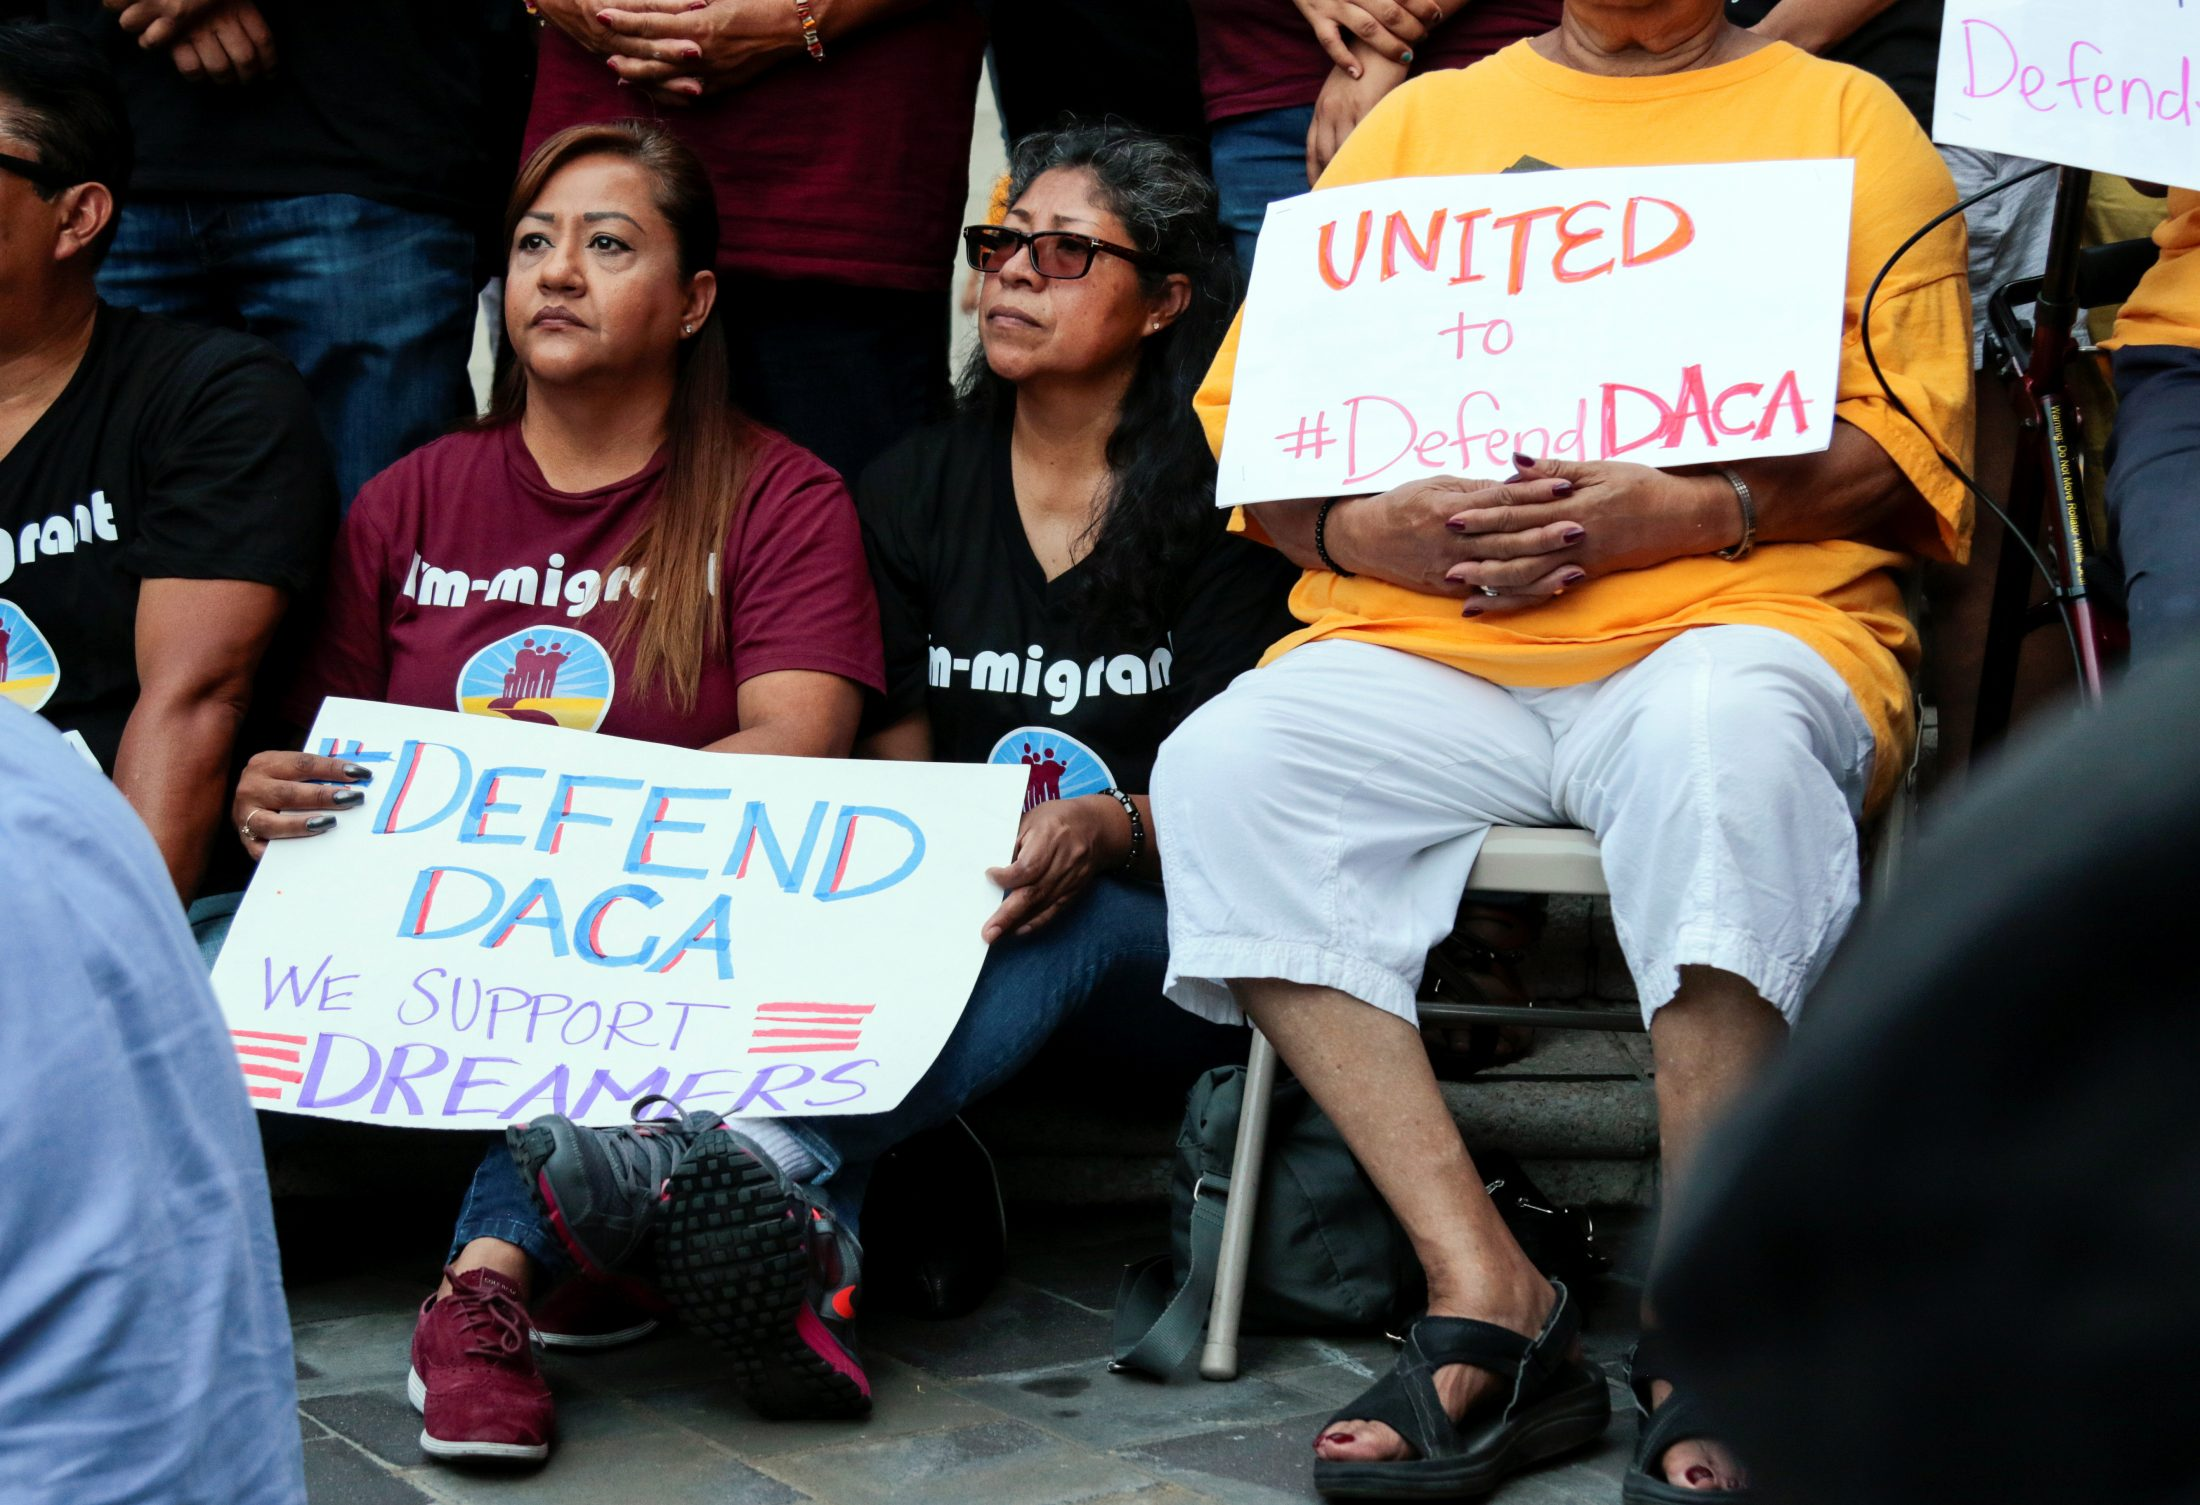 Elena (L), the parent of a Deferred Action for Childhood Arrivals (DACA) program during a rally outside the Federal Building in Los Angeles, California. Photo by Kyle Grillot/Reuters